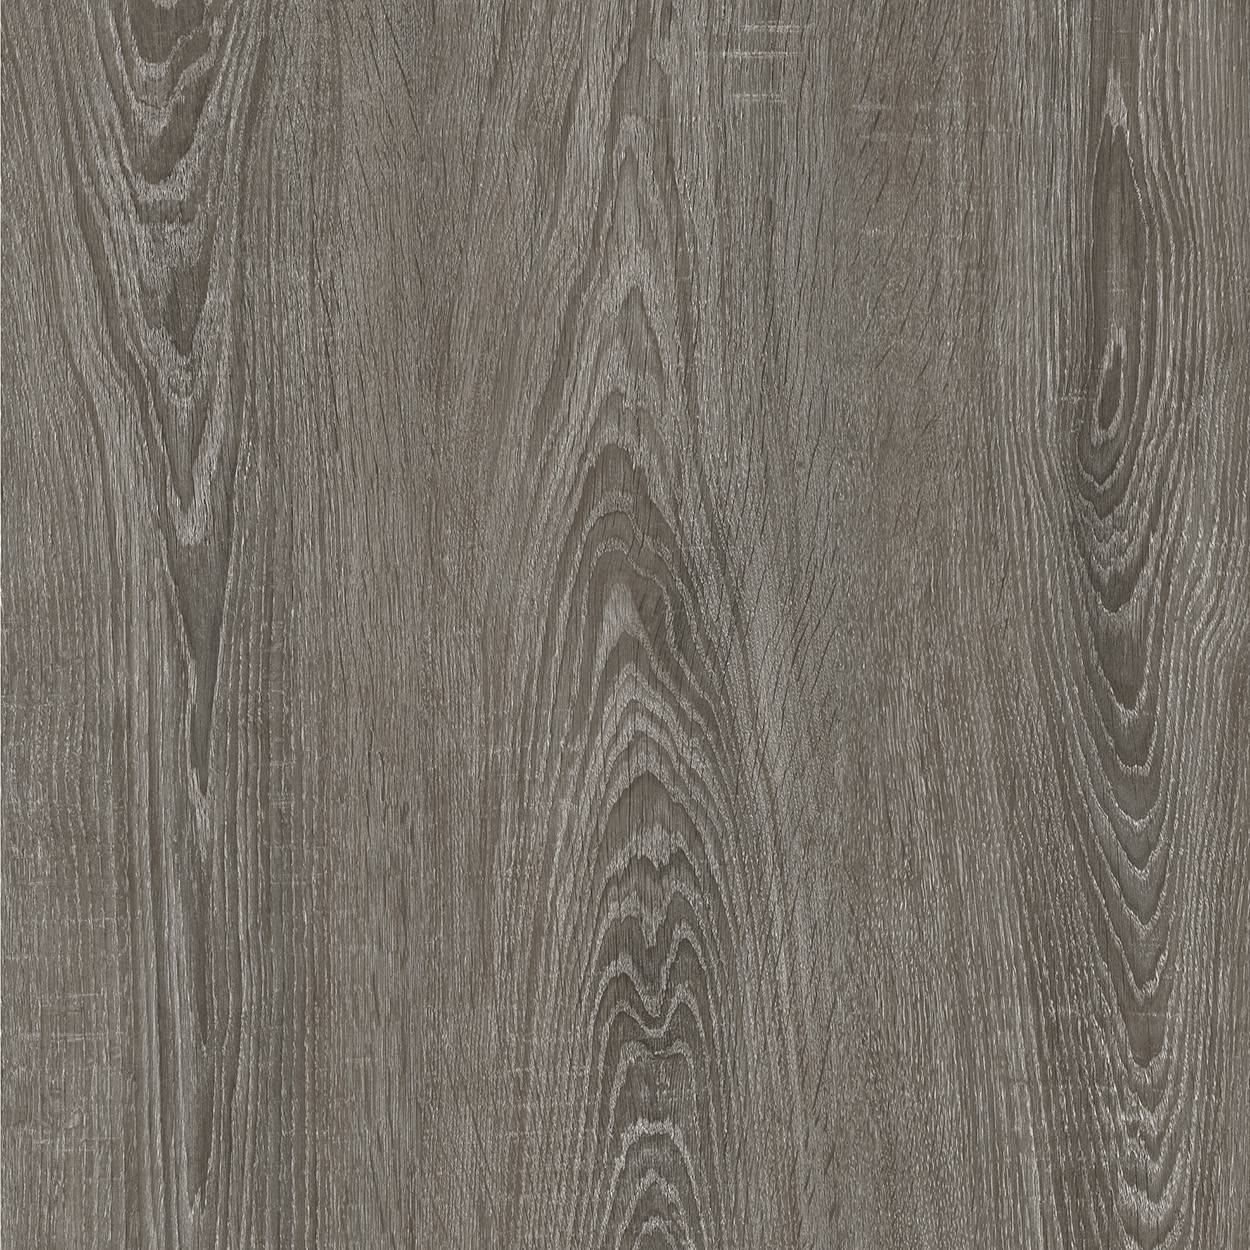 Rigid core spc flooring / lvt flooring for hotel click vinyl flooring